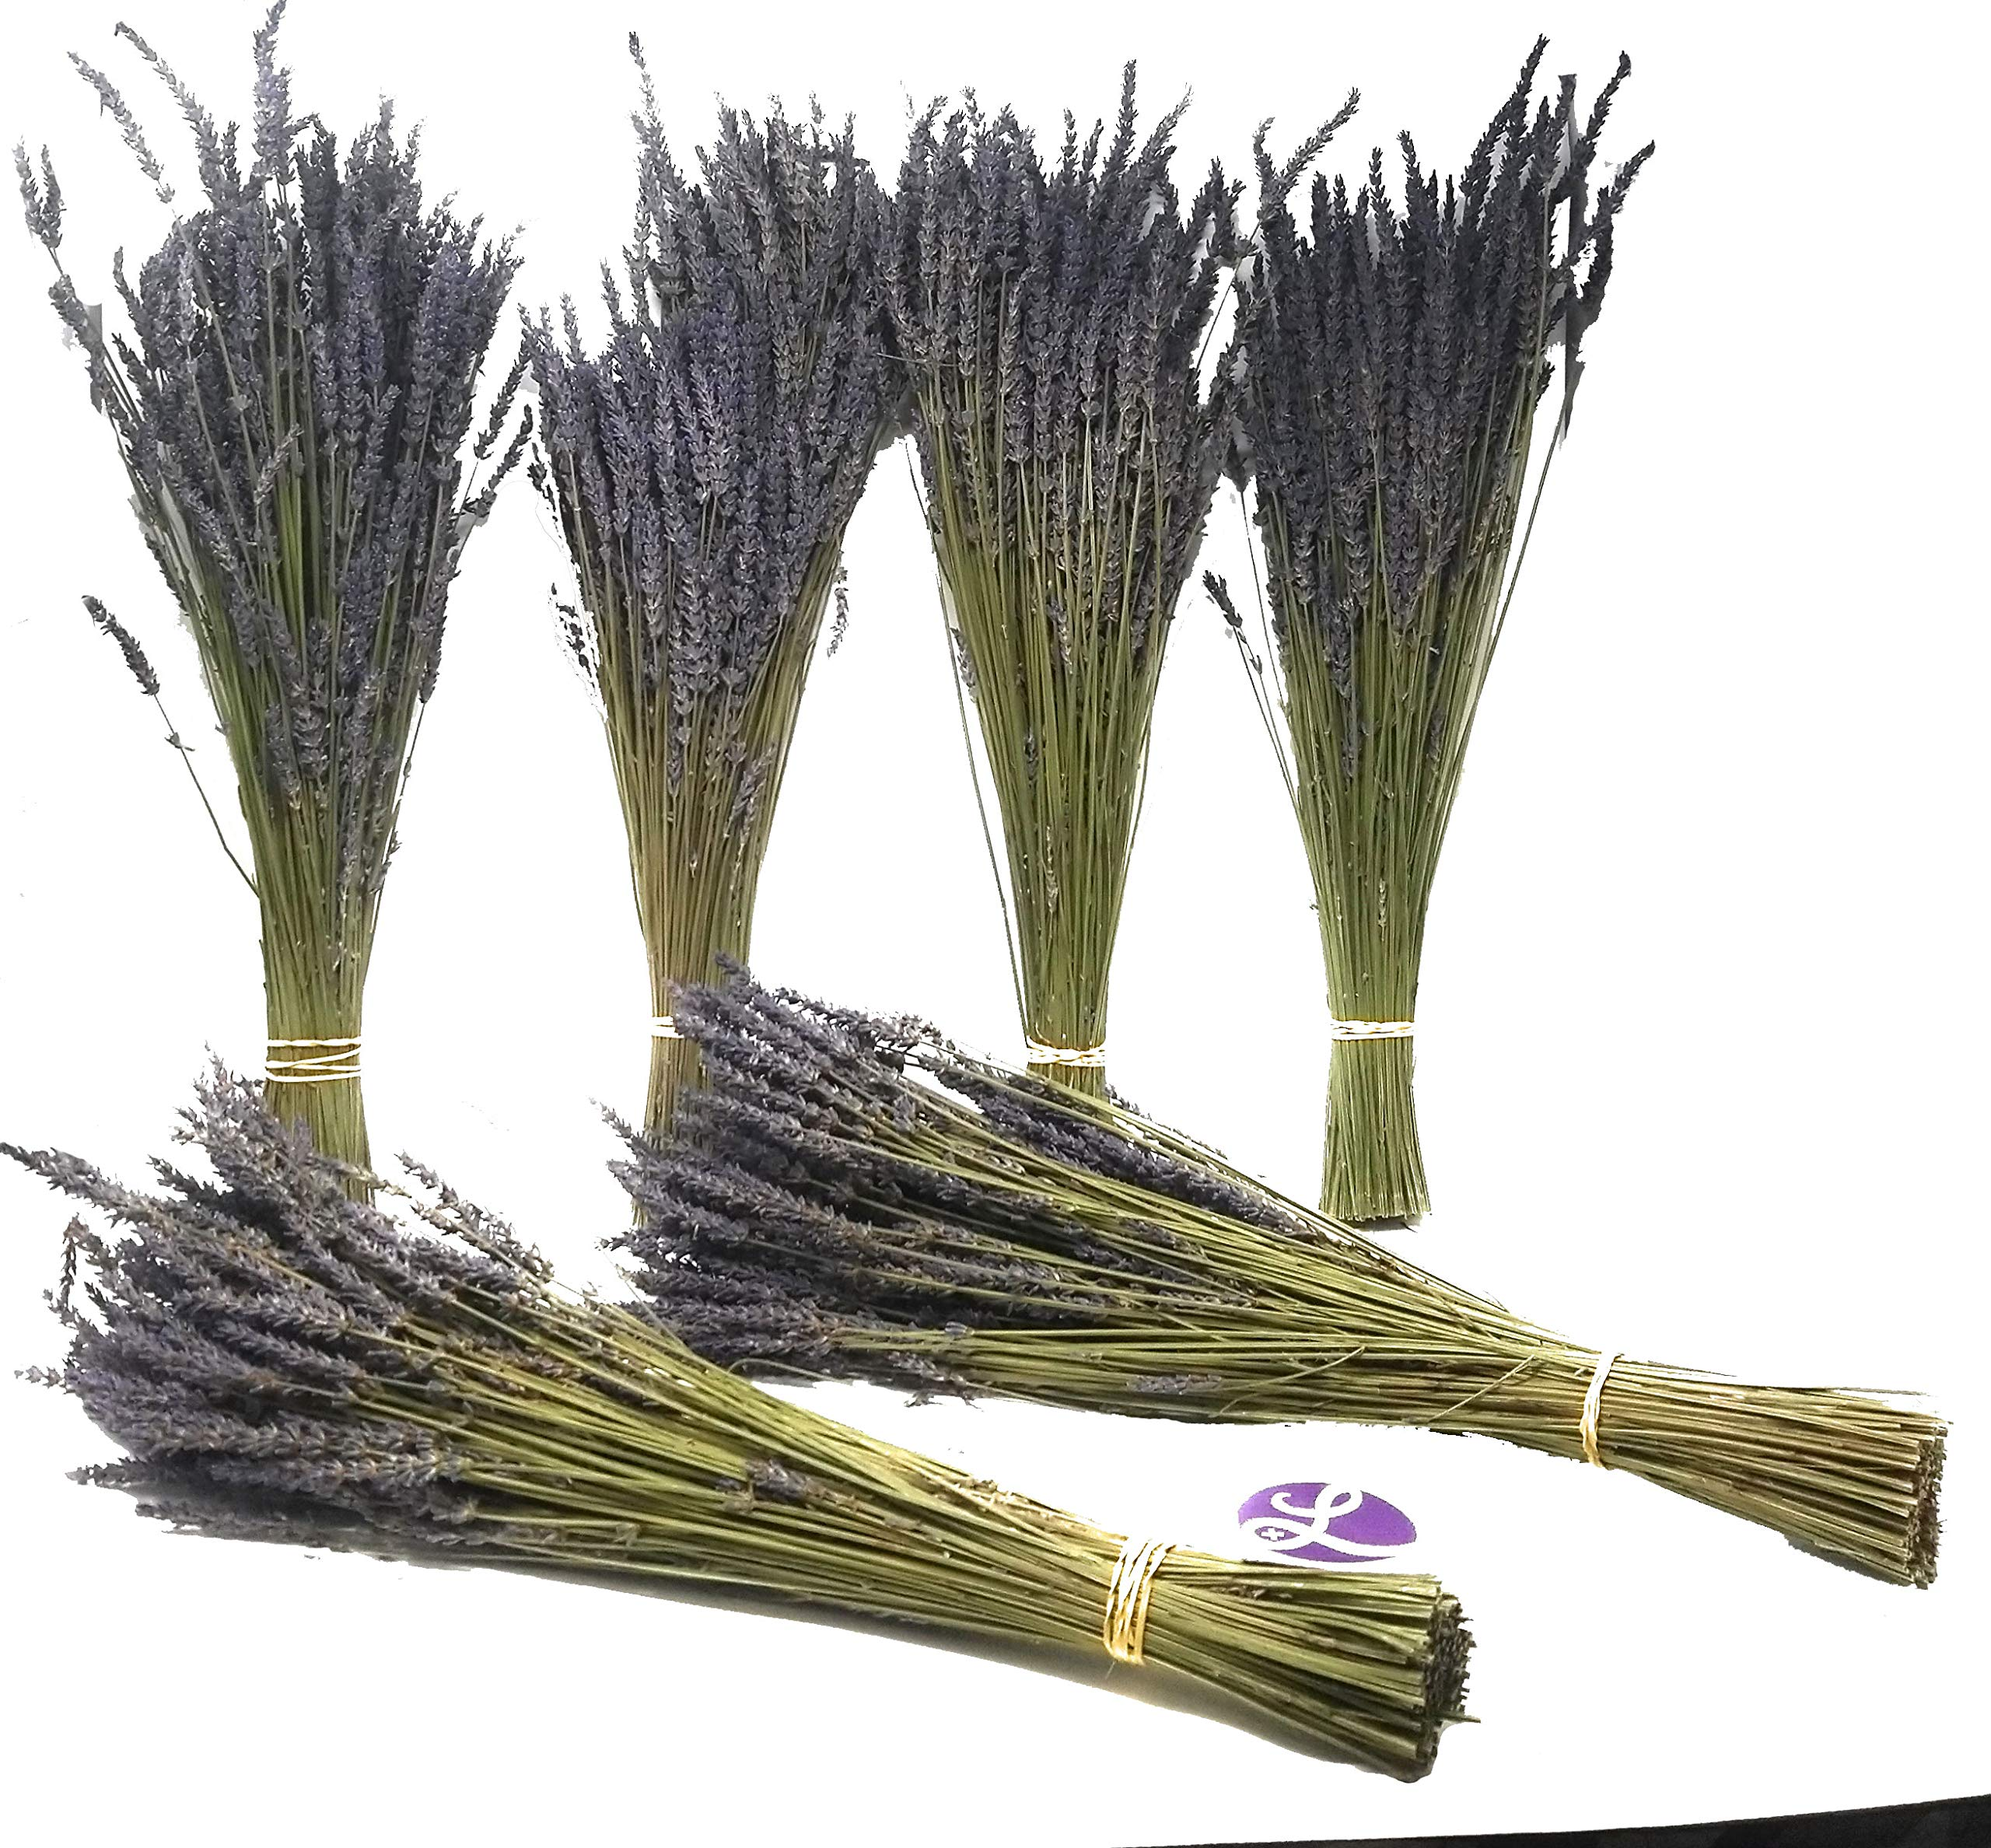 Findlavender - Lavender Dried Premium Bundles - 22 to 24'' - 130 to 150 Stems - Can Be Used for Any Ocassion - Perfect for your wedding! - 6 Bundles by Findlavender